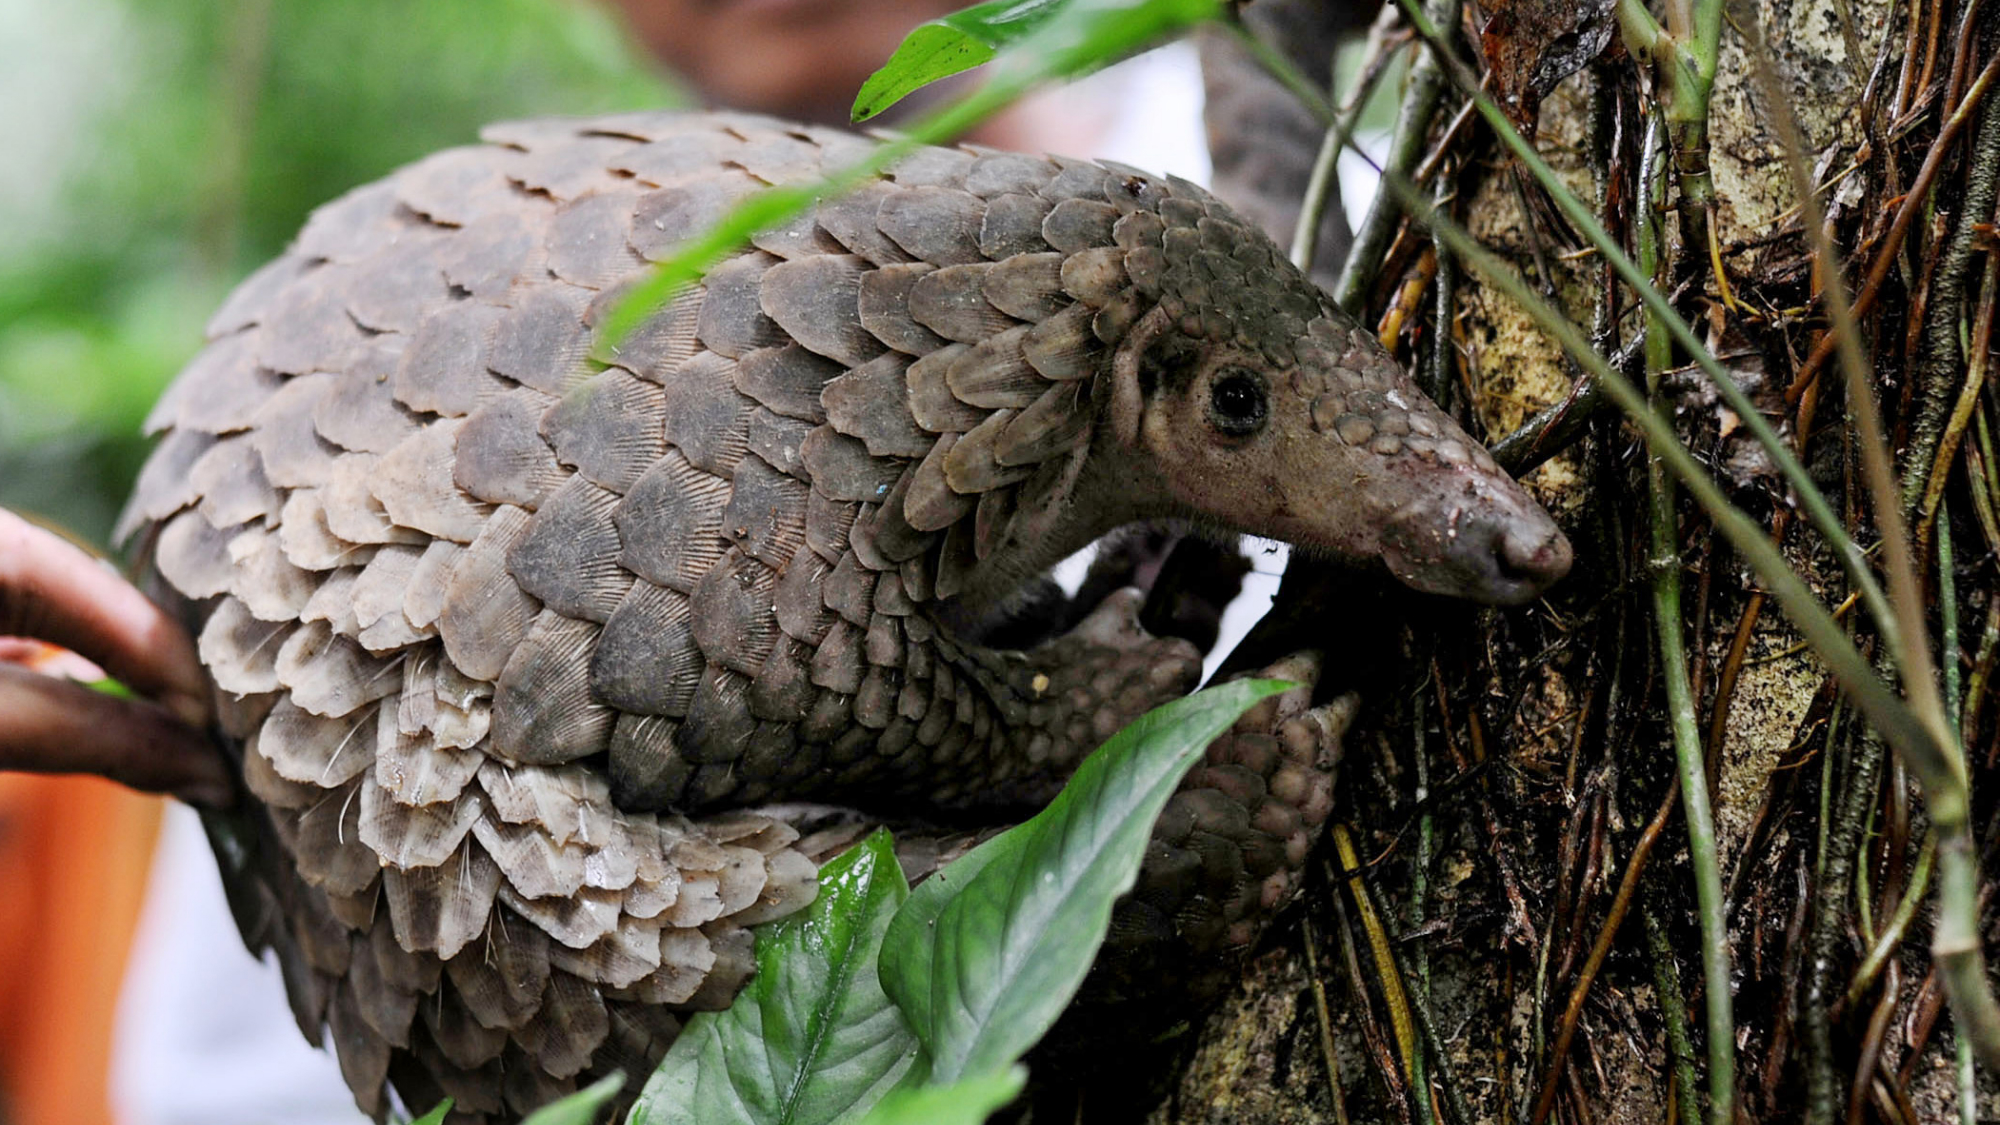 A pangolin is released into the wild by Natural Resources Conservation Agency (BKSDA) officials at a conservation forest in Sibolangit, North Sumatra, Indonesia, Friday, March 1, 2013. The anteater is part of 128 pangolins confiscated by customs officers from a smuggler's boat off Sumatra island as it was heading for Malaysia last week. (AP Photo/Jefri Tarigan